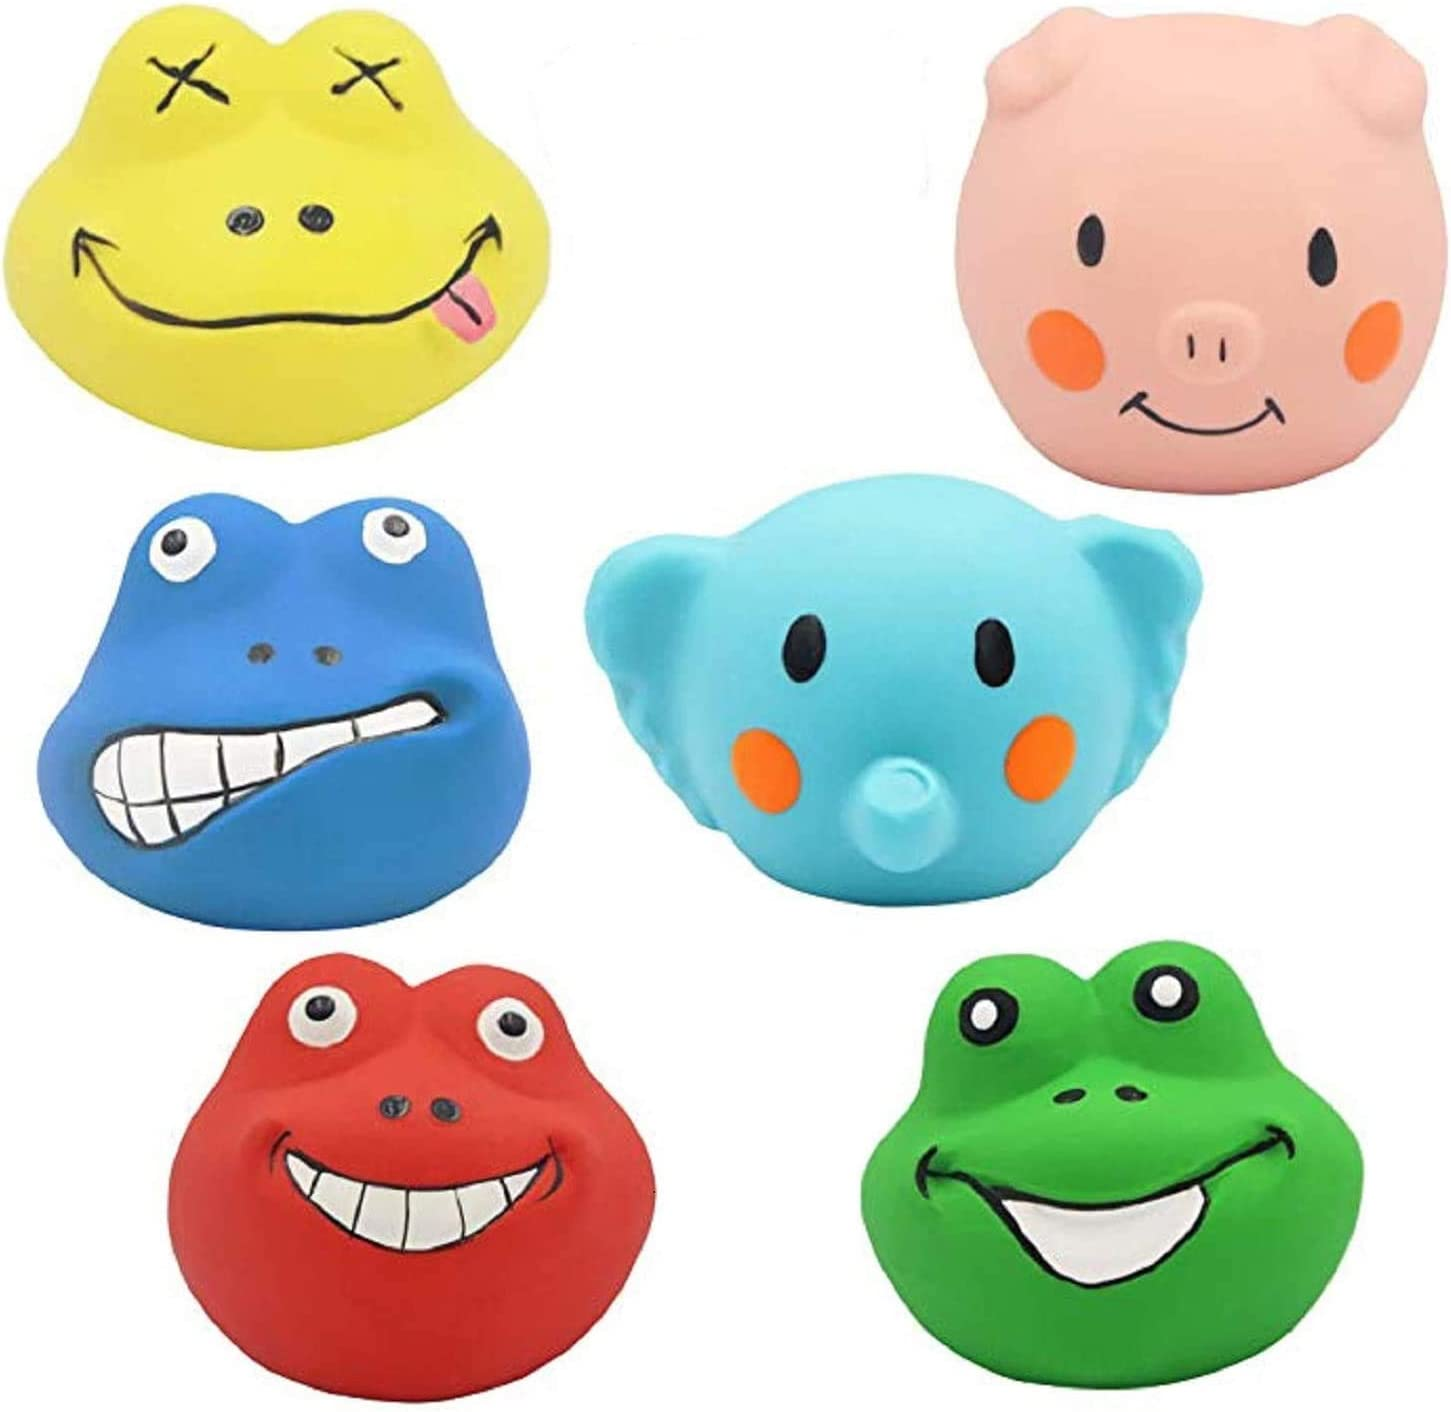 Squeaky Dog Toys 6 Pack Fashionable Soft Funny Anima Toy Teeth Puppy Boston Mall Rubber